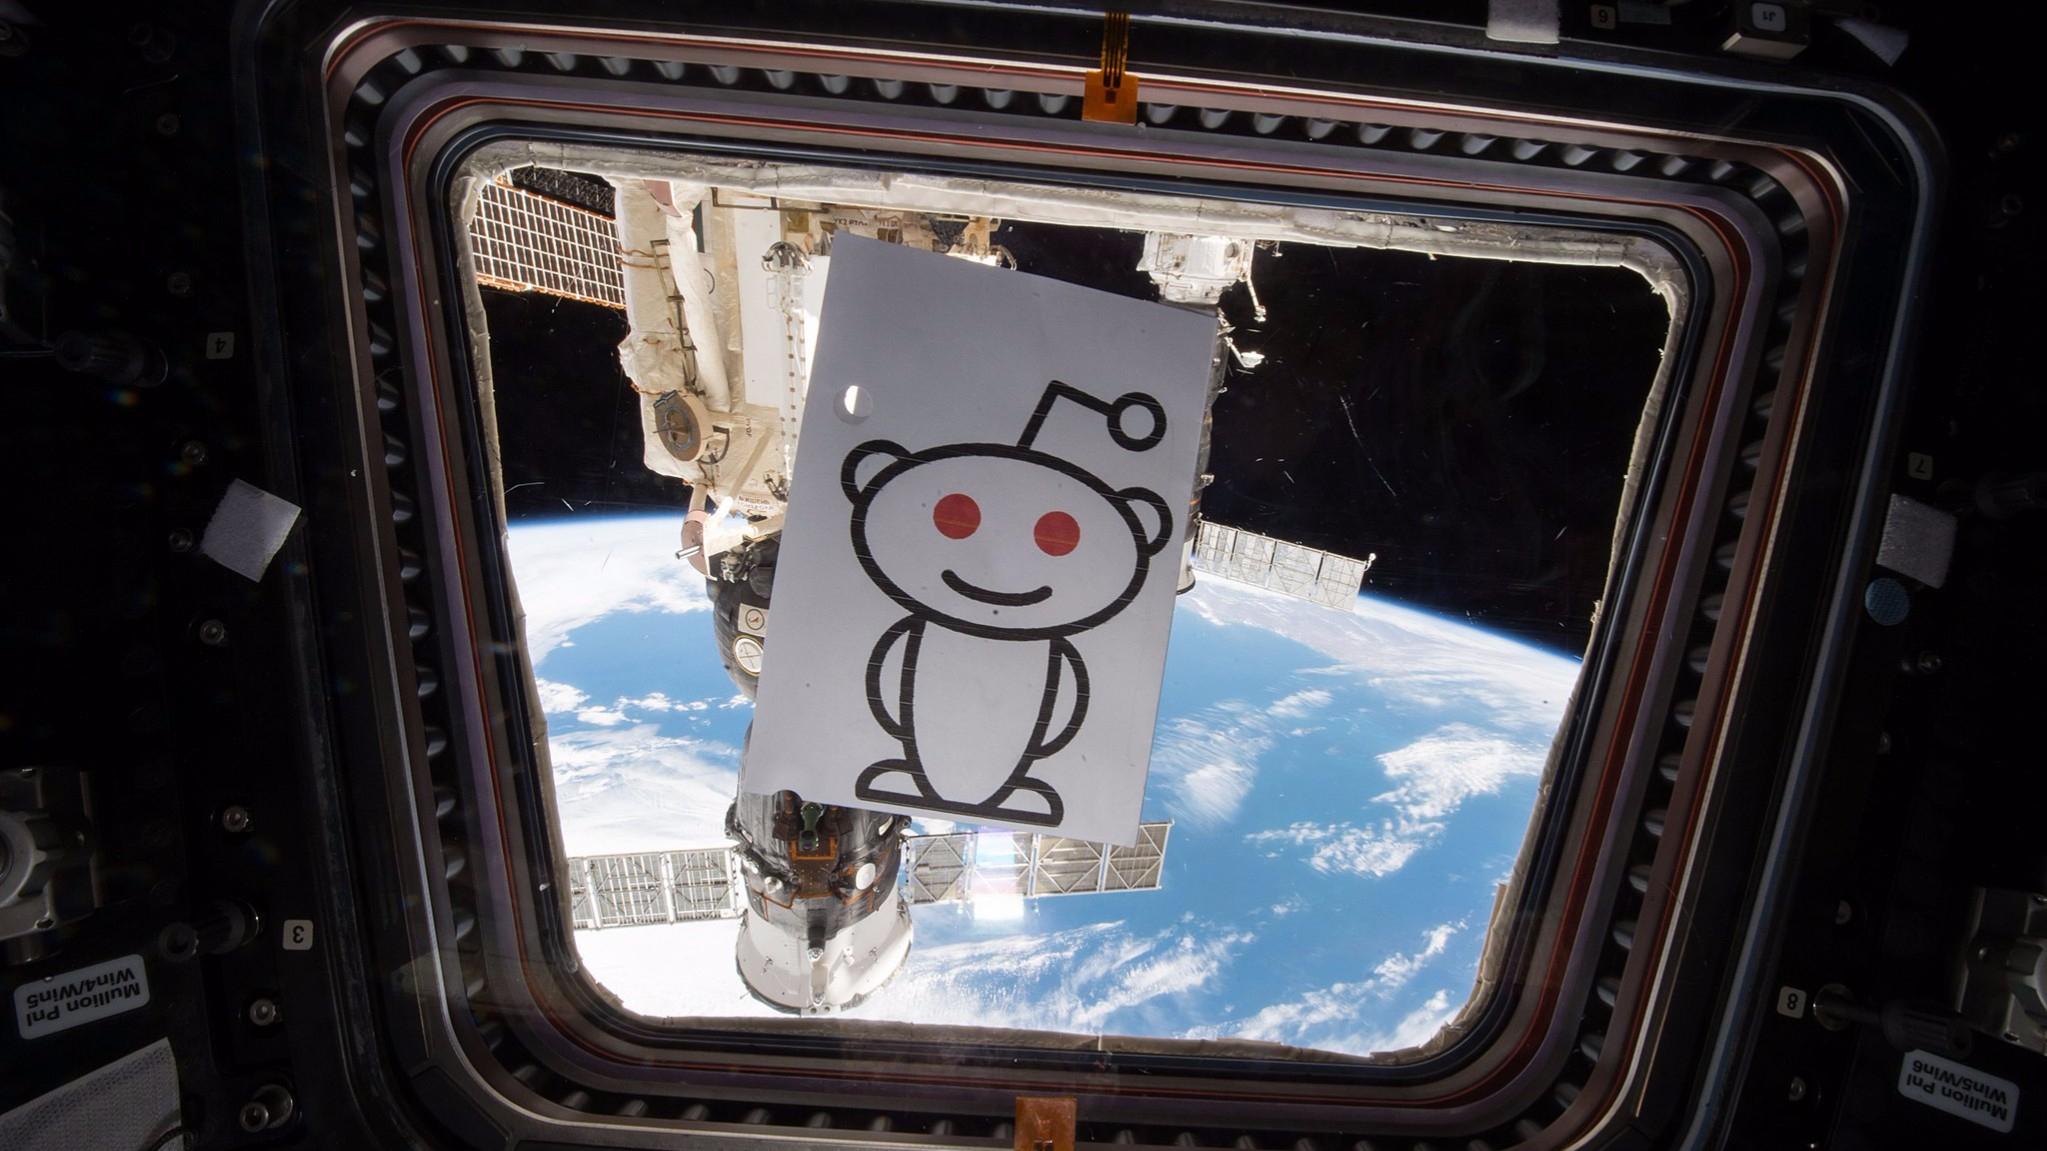 NASA - Scott Kelly Reddit AMA